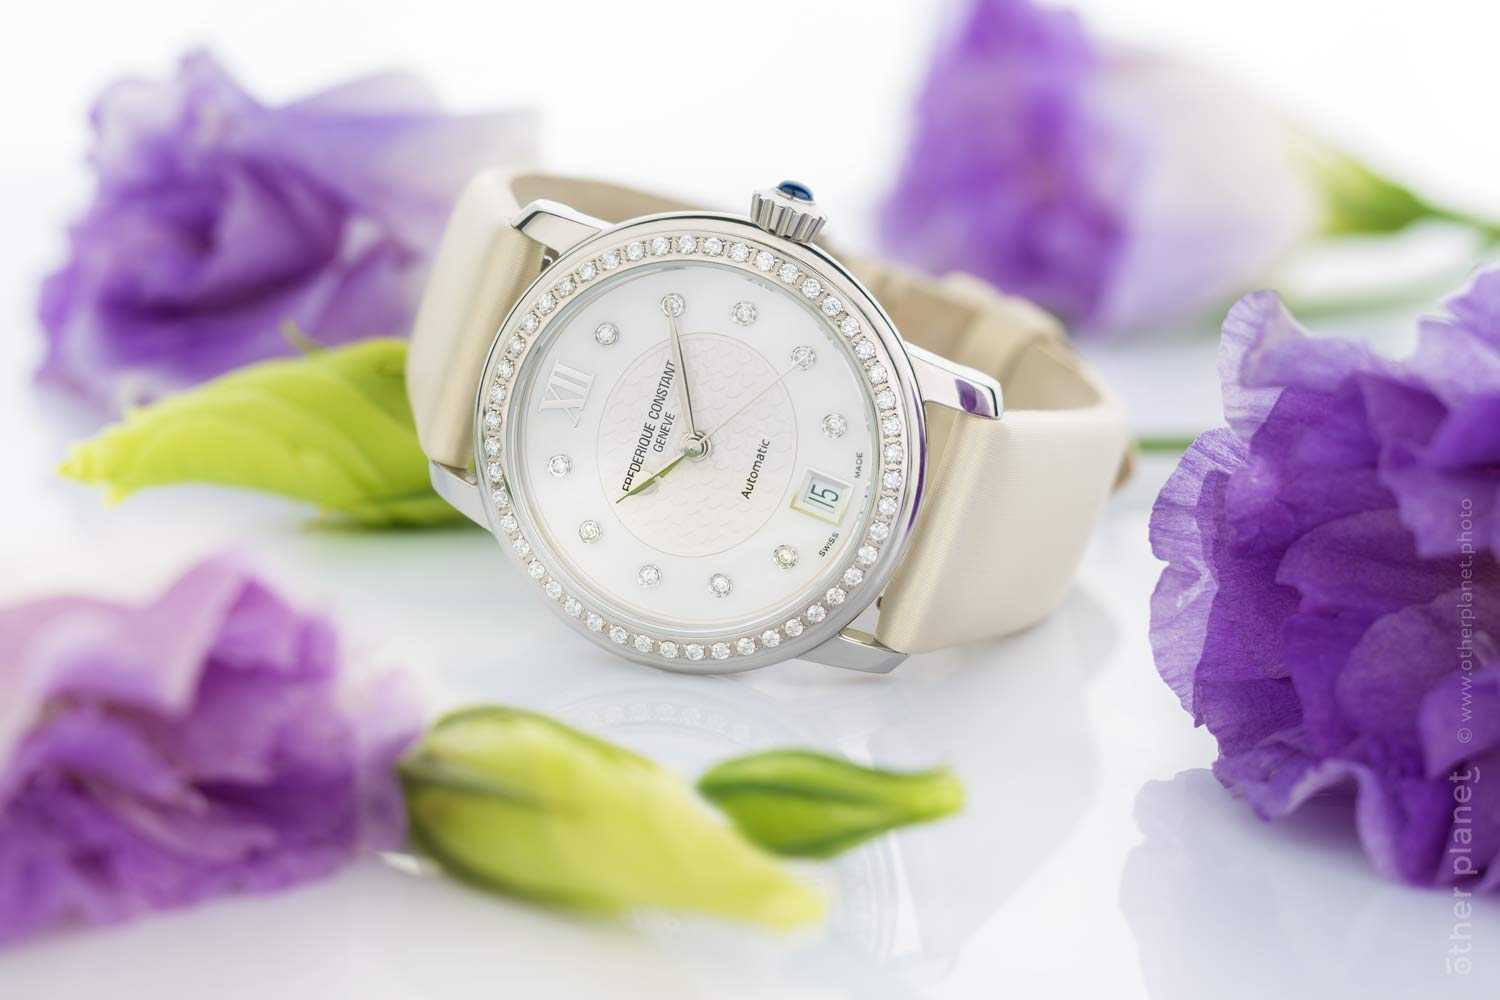 Frederique constant women light watch surrounded by flowers